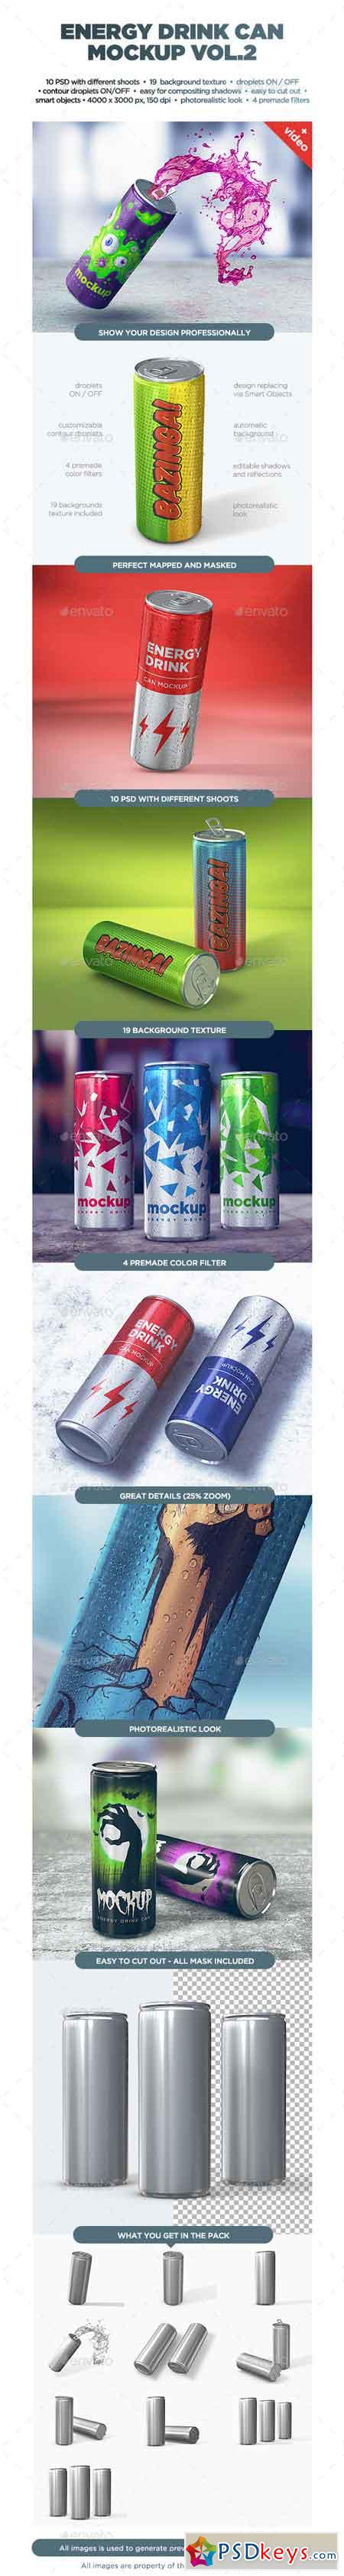 Energy Drink Can Mockup vol2 13867675